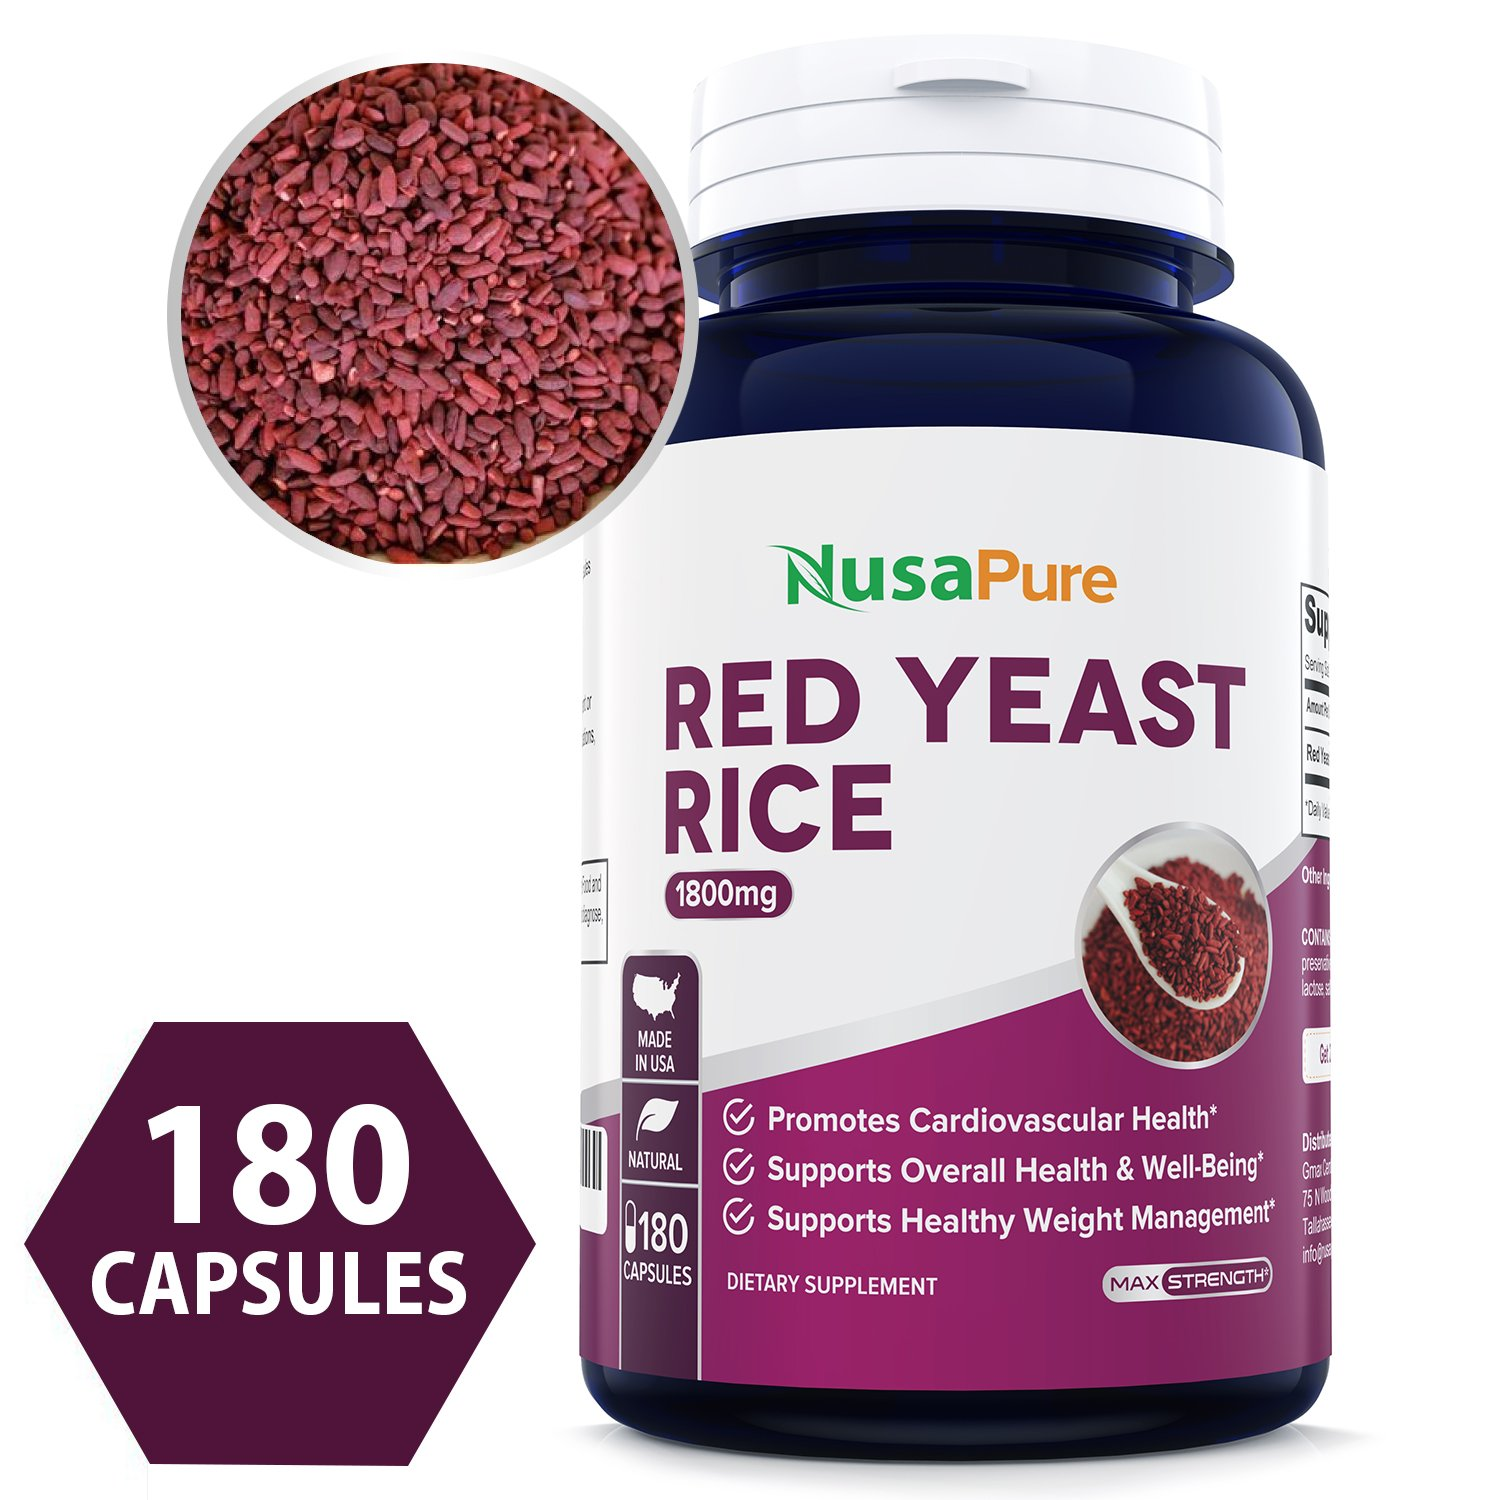 Best Red Yeast Rice 1800mg 180 Capsules (Non-GMO, Gluten Free & Citrinin Free) - Dietary Supplement Powder Pills to Support Cardiovascular Health - 100% Money Back Guarantee - Order Risk Free!